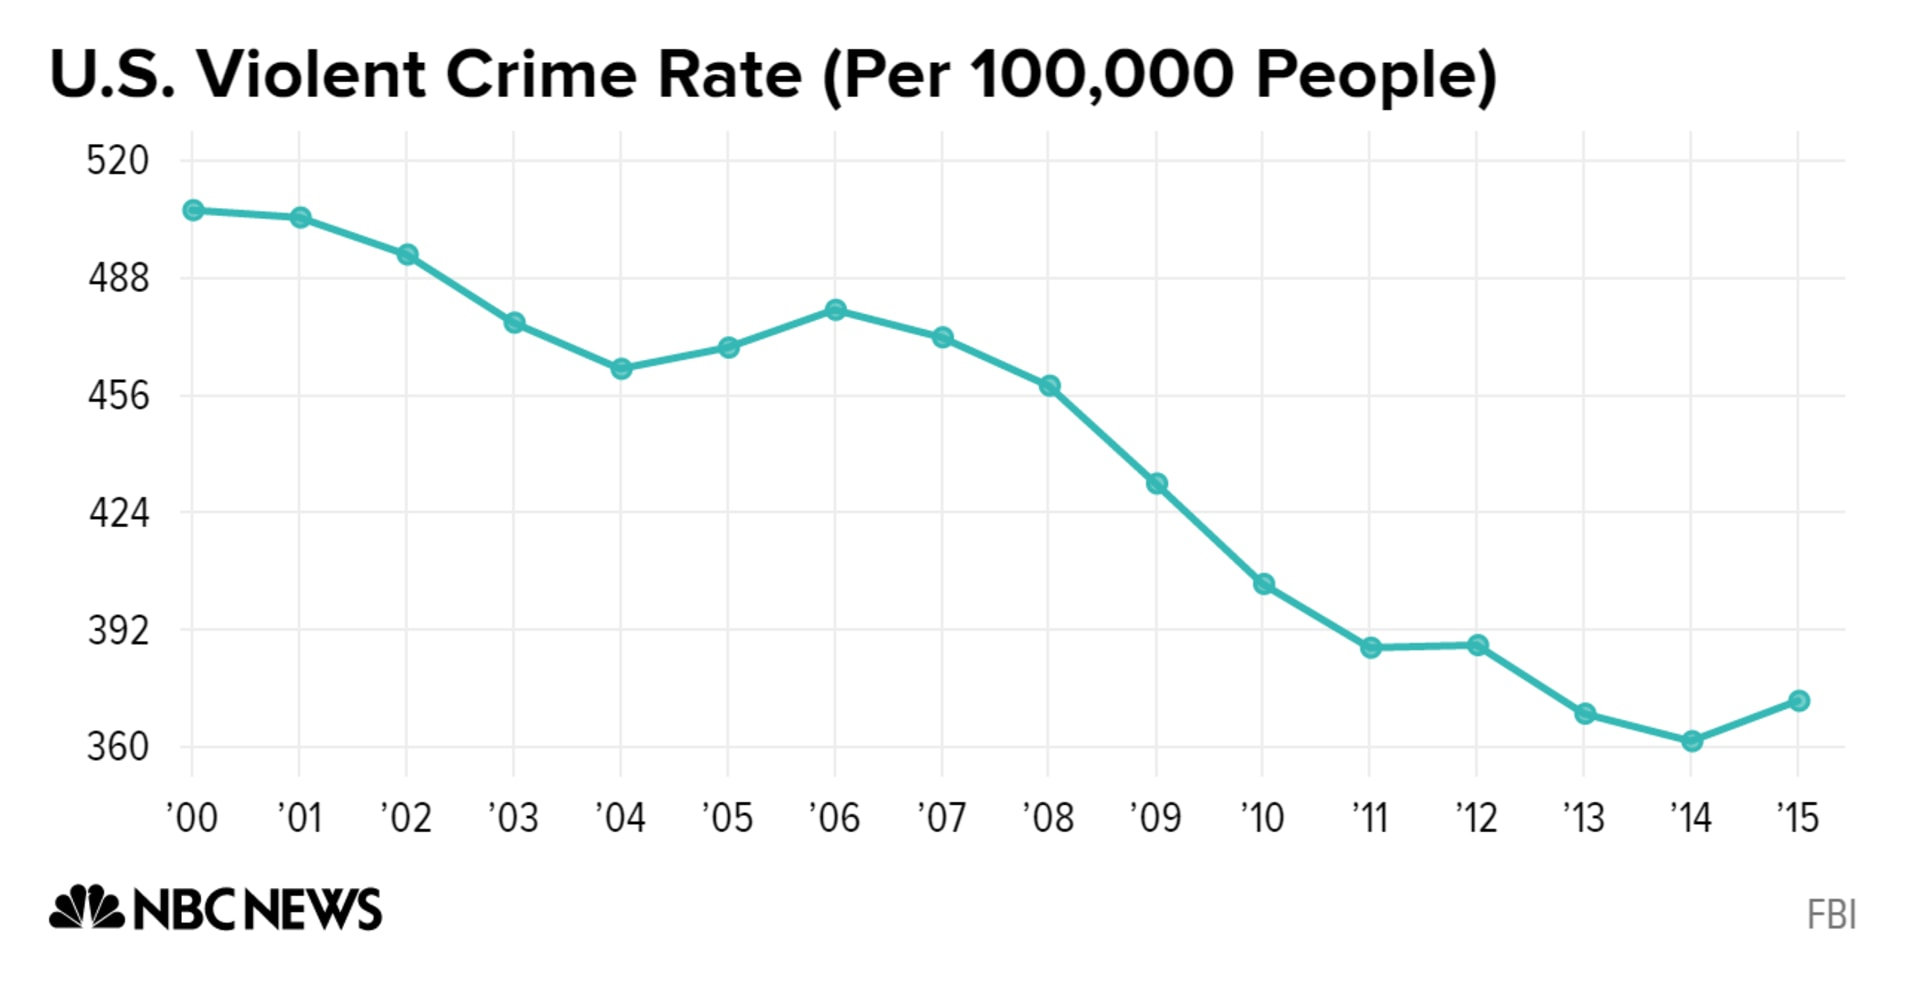 5 facts about crime in the U.S.